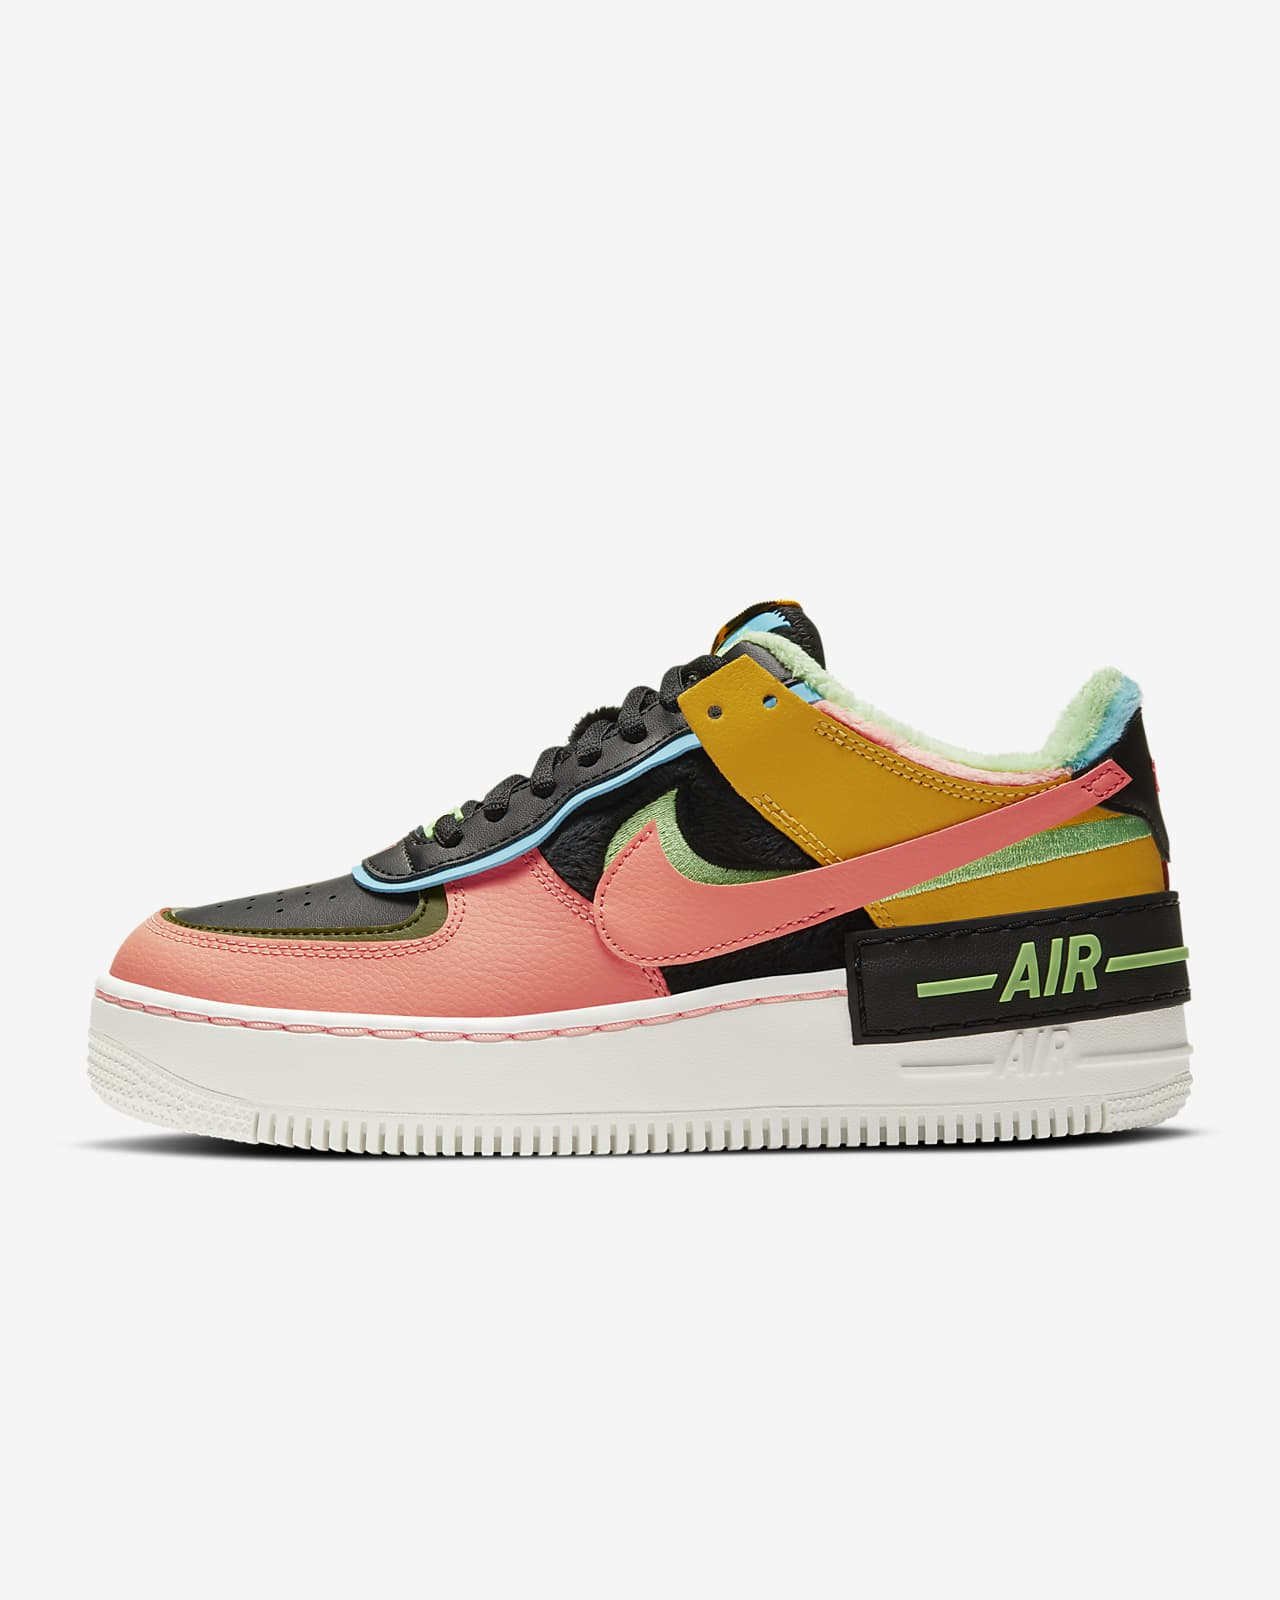 Nike Air Force 1 Shadow Se Women S Shoe Nike Com This version of the classic 'air force 1' has a higher midsole and hollowed outsole, so you get more lift without the heaviness. nike air force 1 shadow se women s shoe